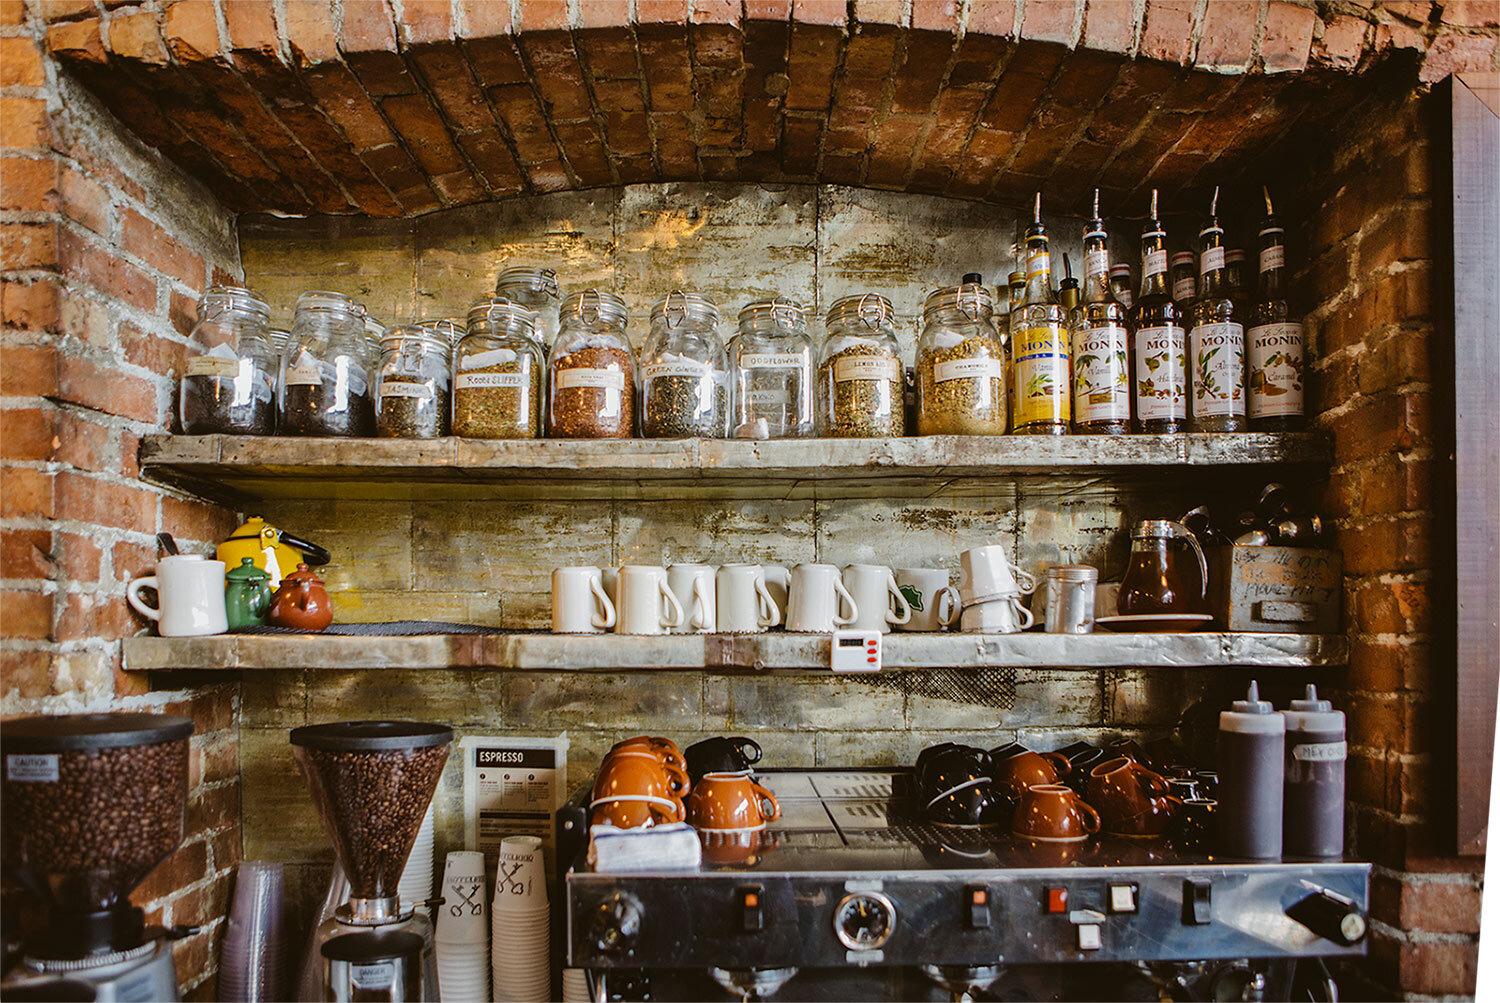 Shelves of spices and coffee in old building